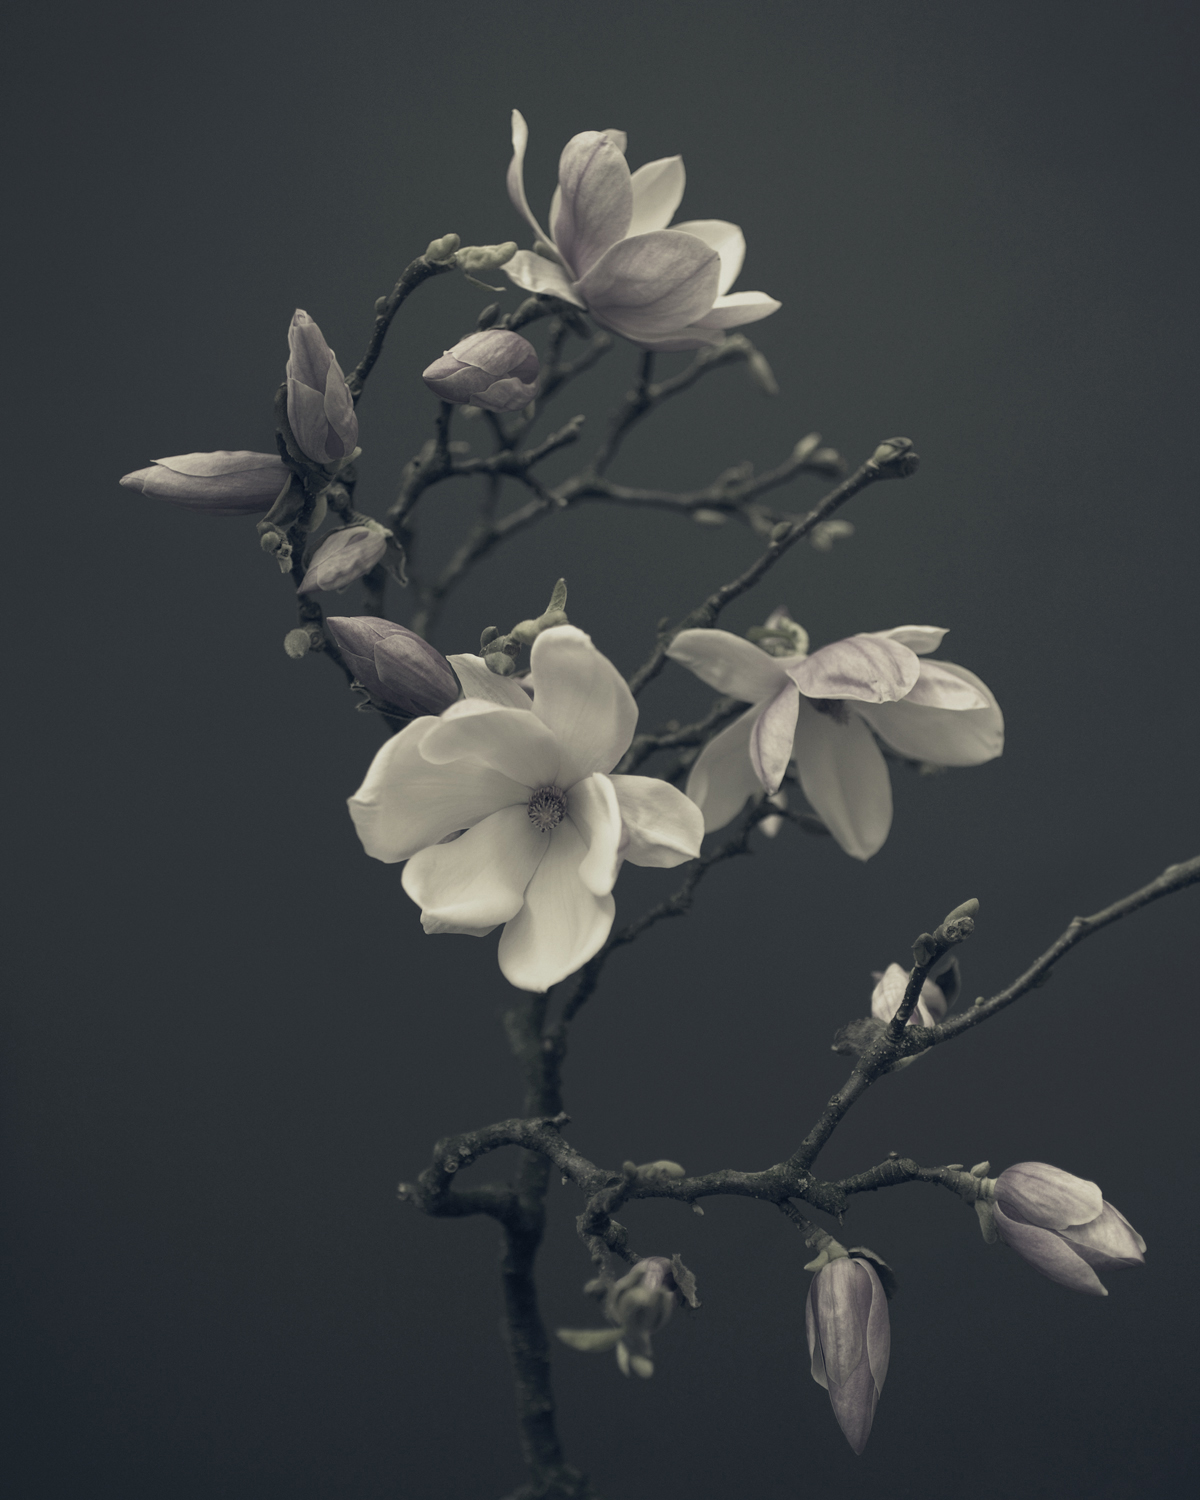 Magnolia No1 artwork by Pete Hollow - art listed for sale on Artplode